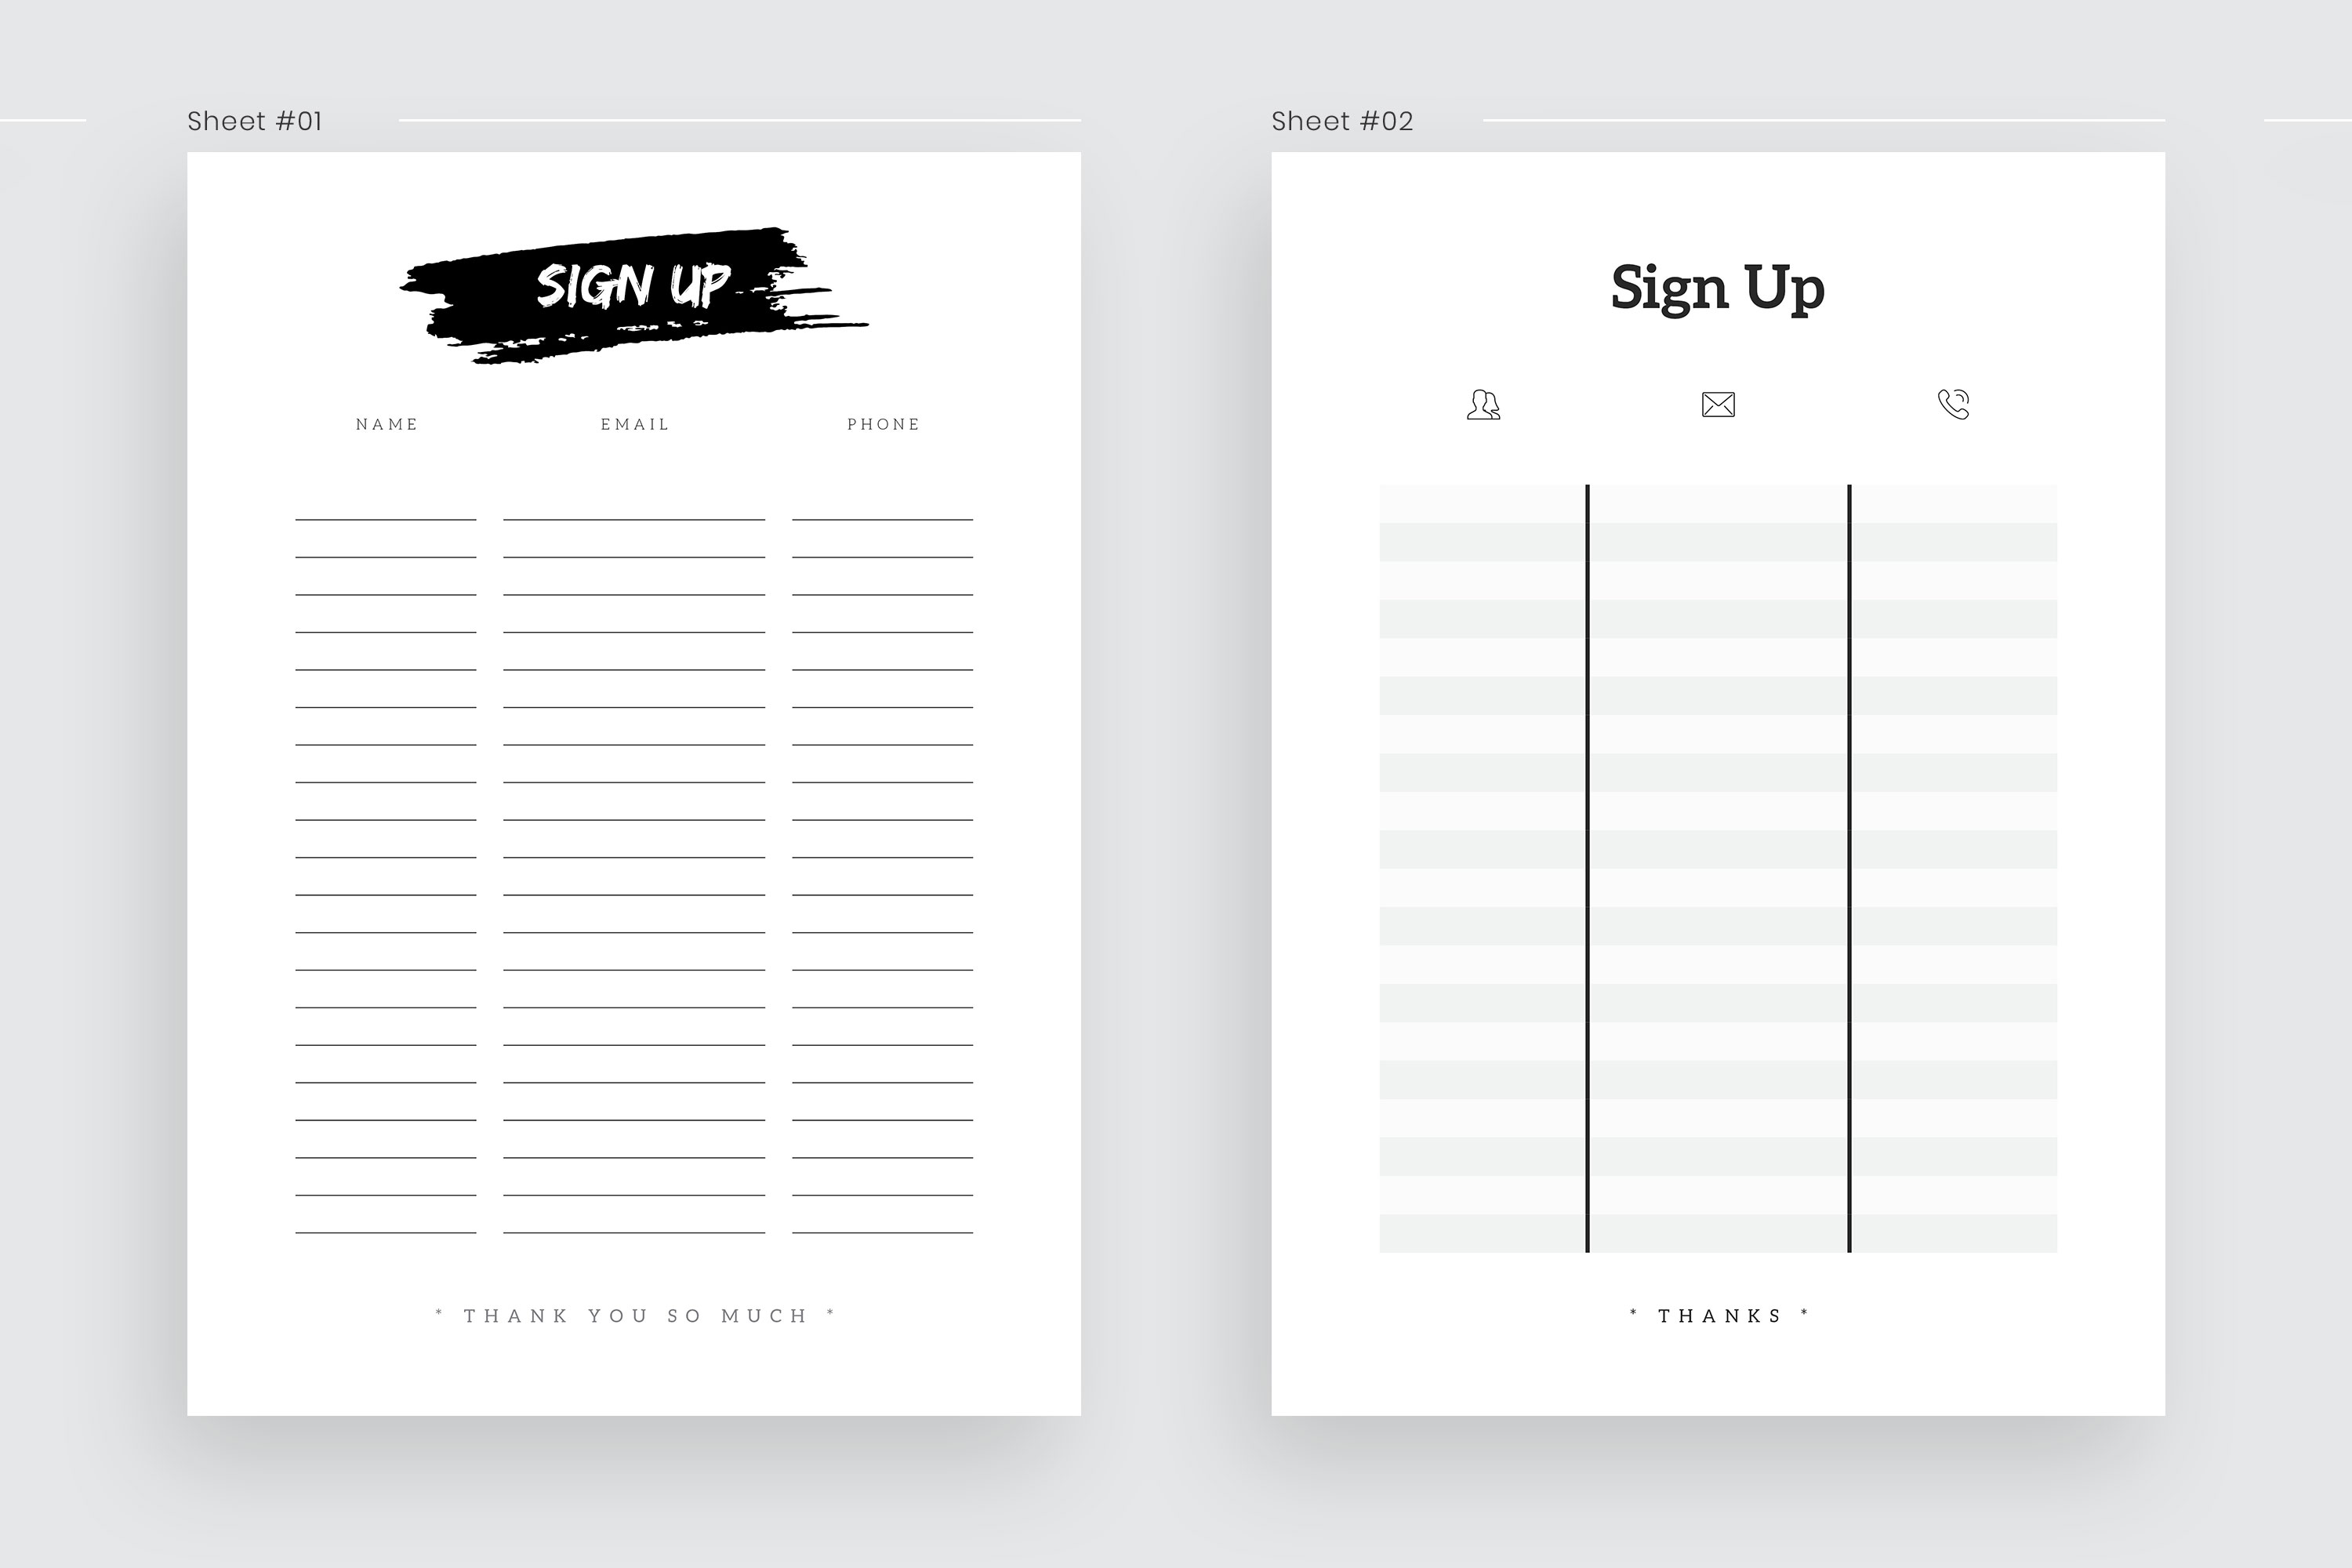 Sign Up Template example image 5